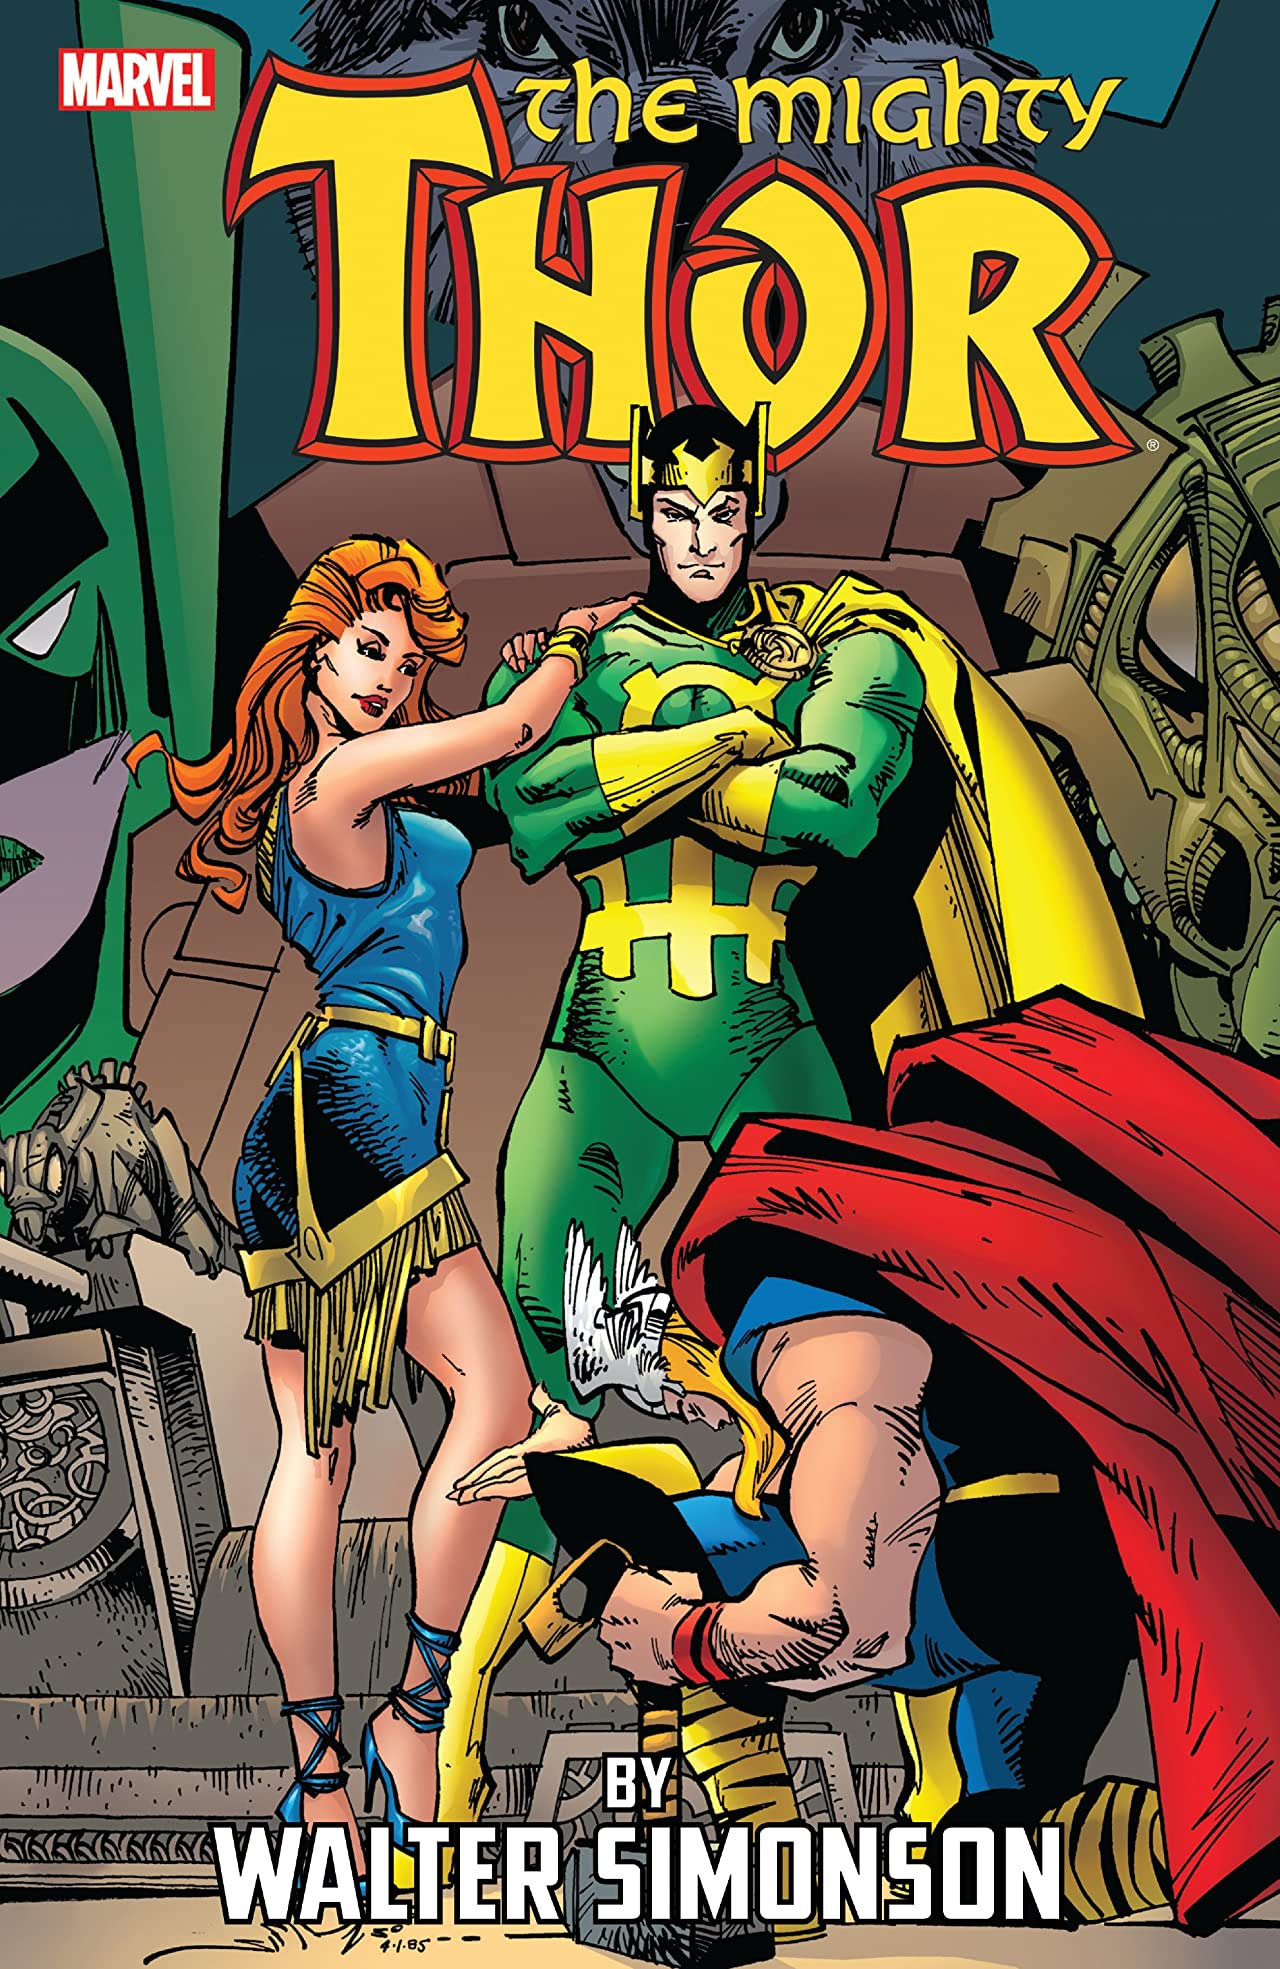 Thor by Walter Simonson Vol. 3